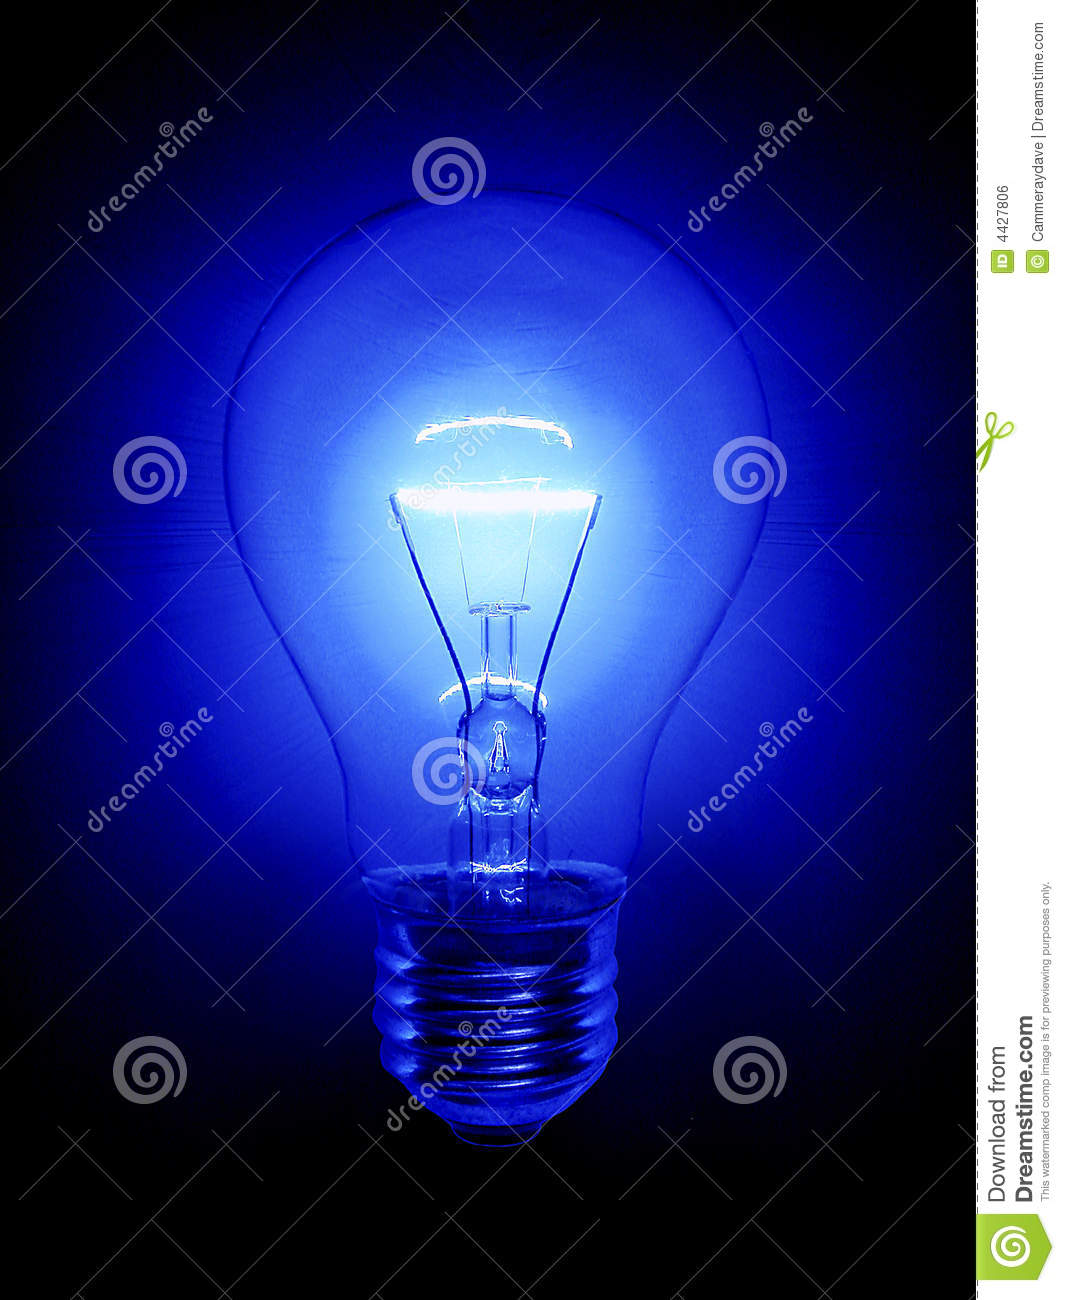 Manufacturers Bulb Major Light